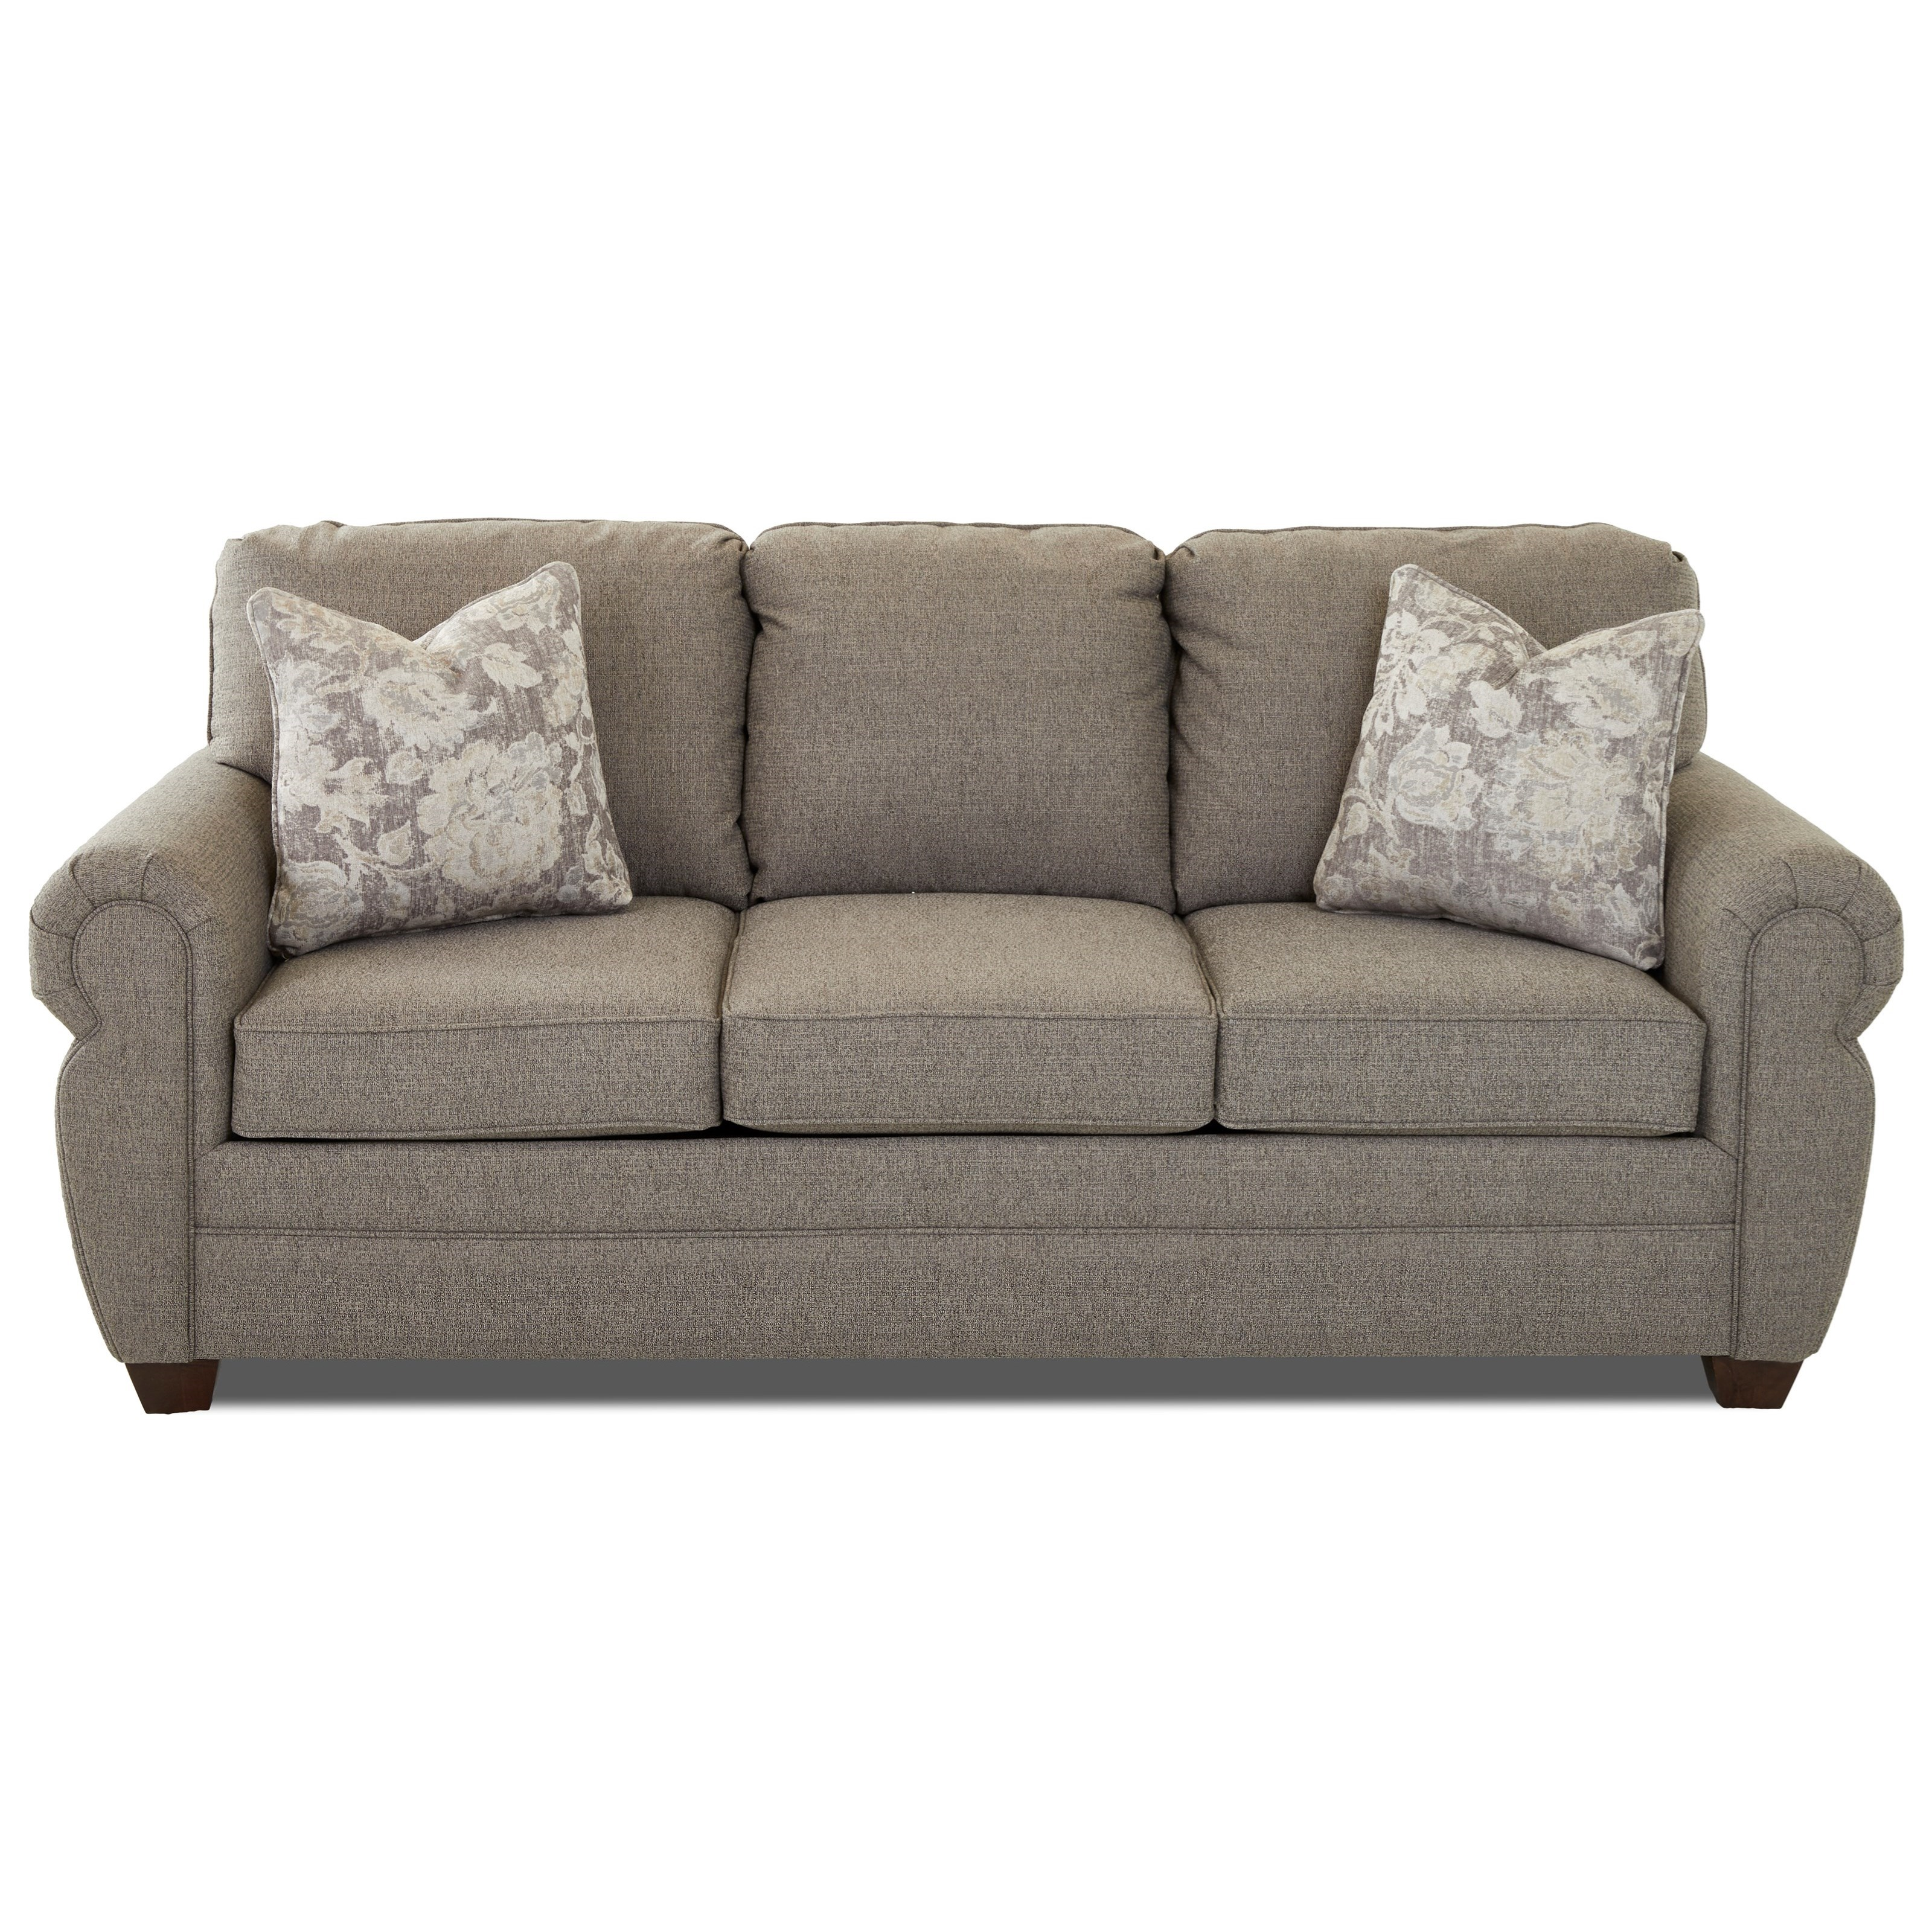 Westbrook Sleeper Sofa w/ Air Coil Mattress by Klaussner at Northeast Factory Direct